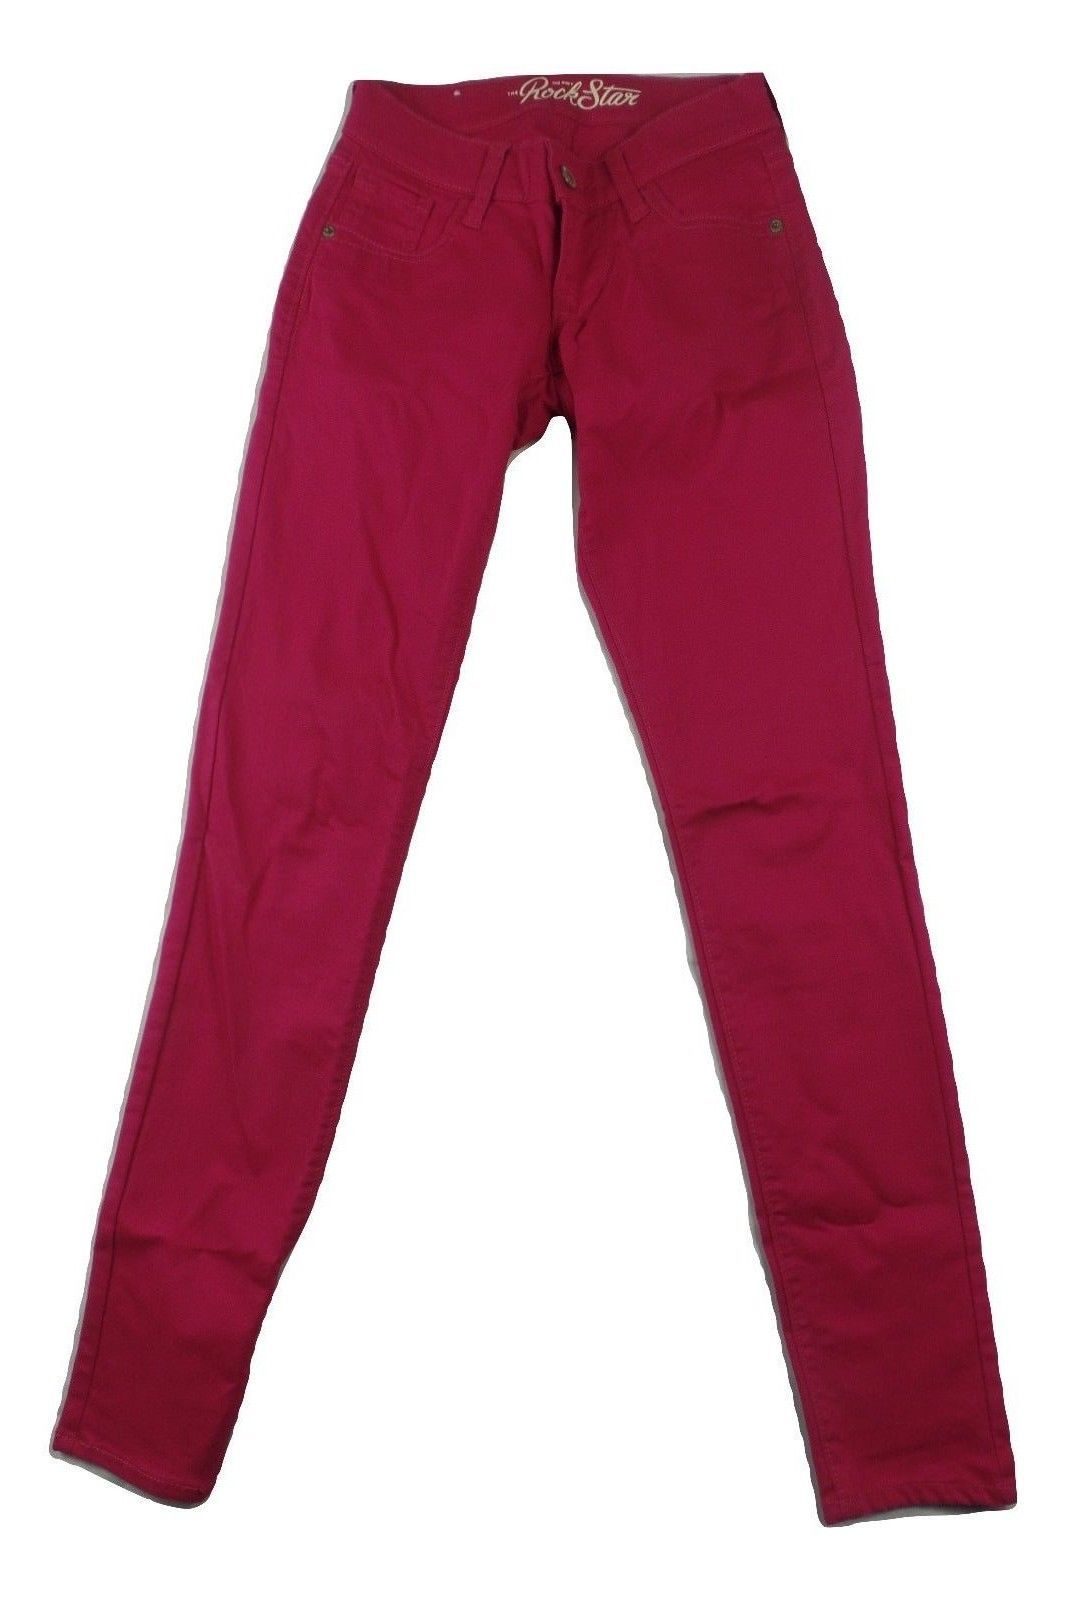 9636530a2ffef S l1600. S l1600. Previous. Old Navy Rockstar Womens Jeans Size 0 (Actual  24x32) Skinny Raspberry Jegging